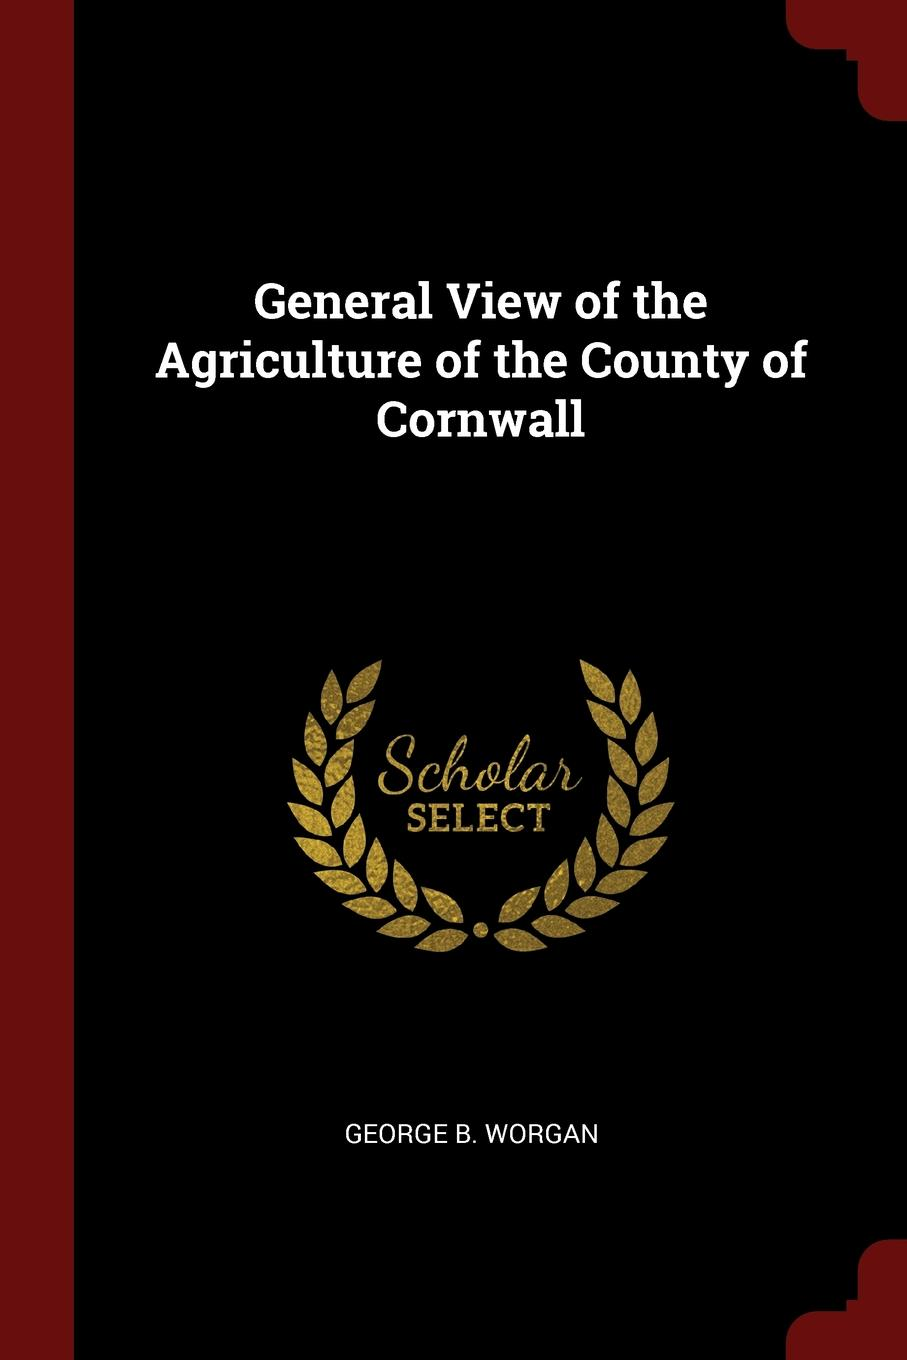 George B. Worgan General View of the Agriculture County Cornwall